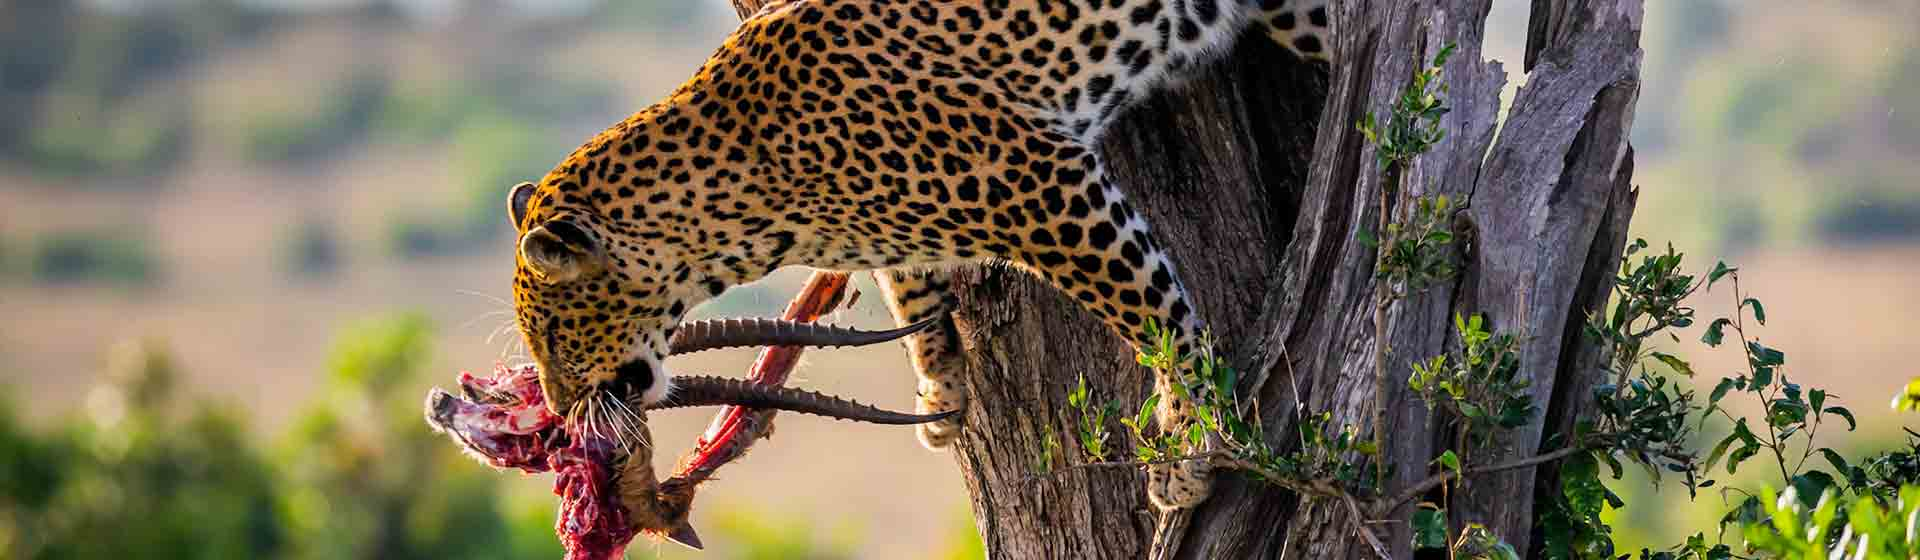 lake Nakuru cheetah hunting - Asili adventure safaris